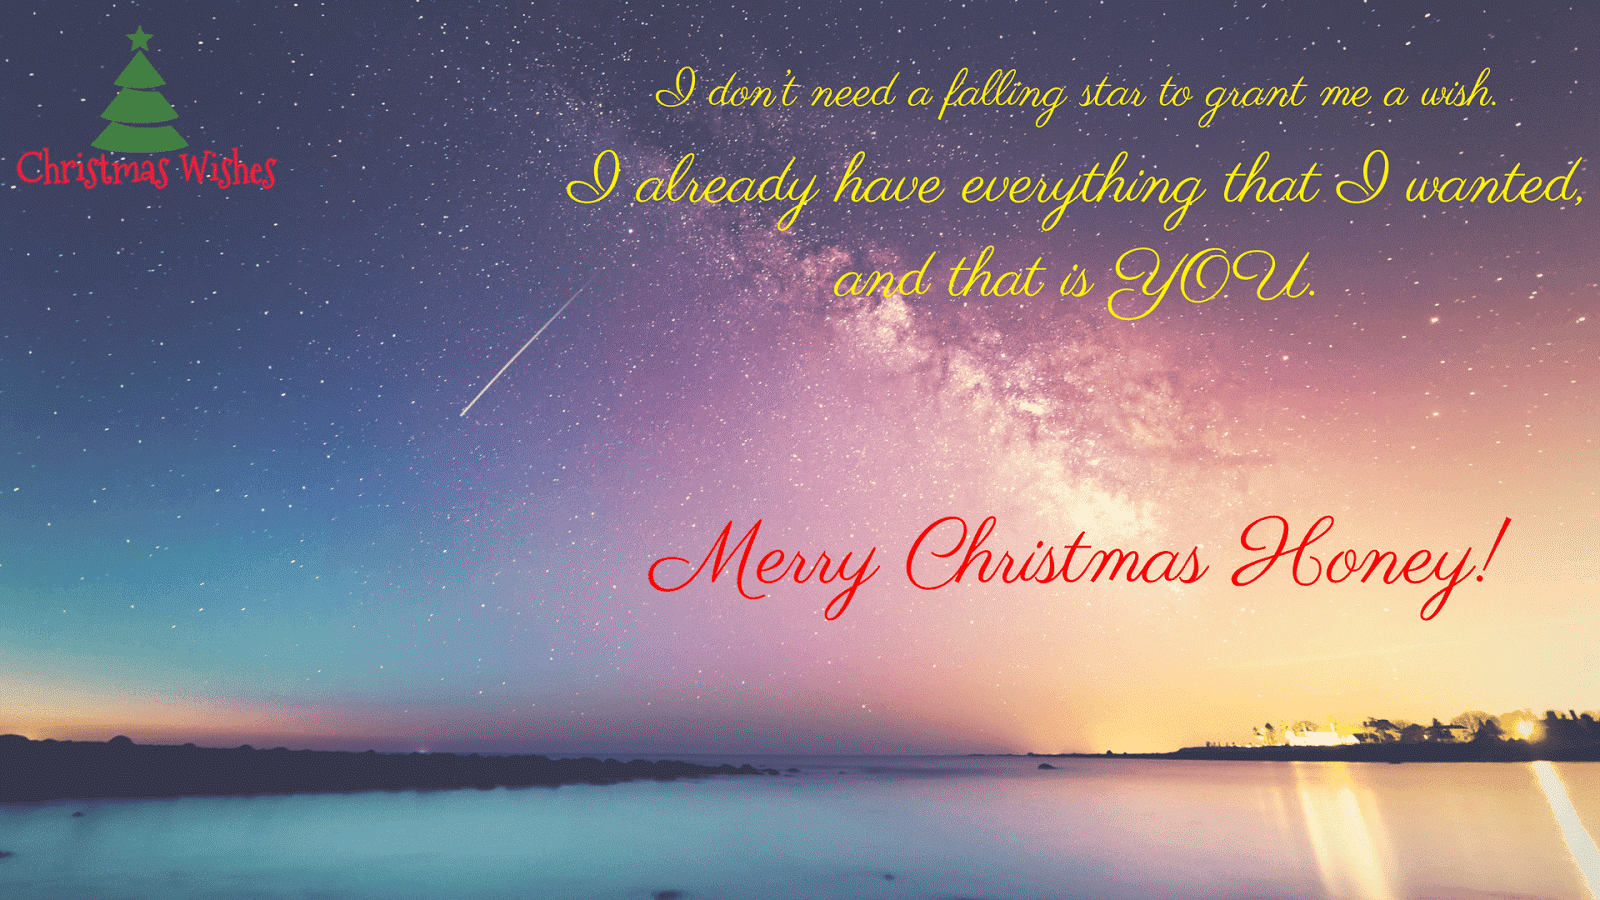 20 beautiful merry christmas messages and wishes for your merry xmas christmas messages for your girlfriend christmas card messages for girlfriend christmas m4hsunfo